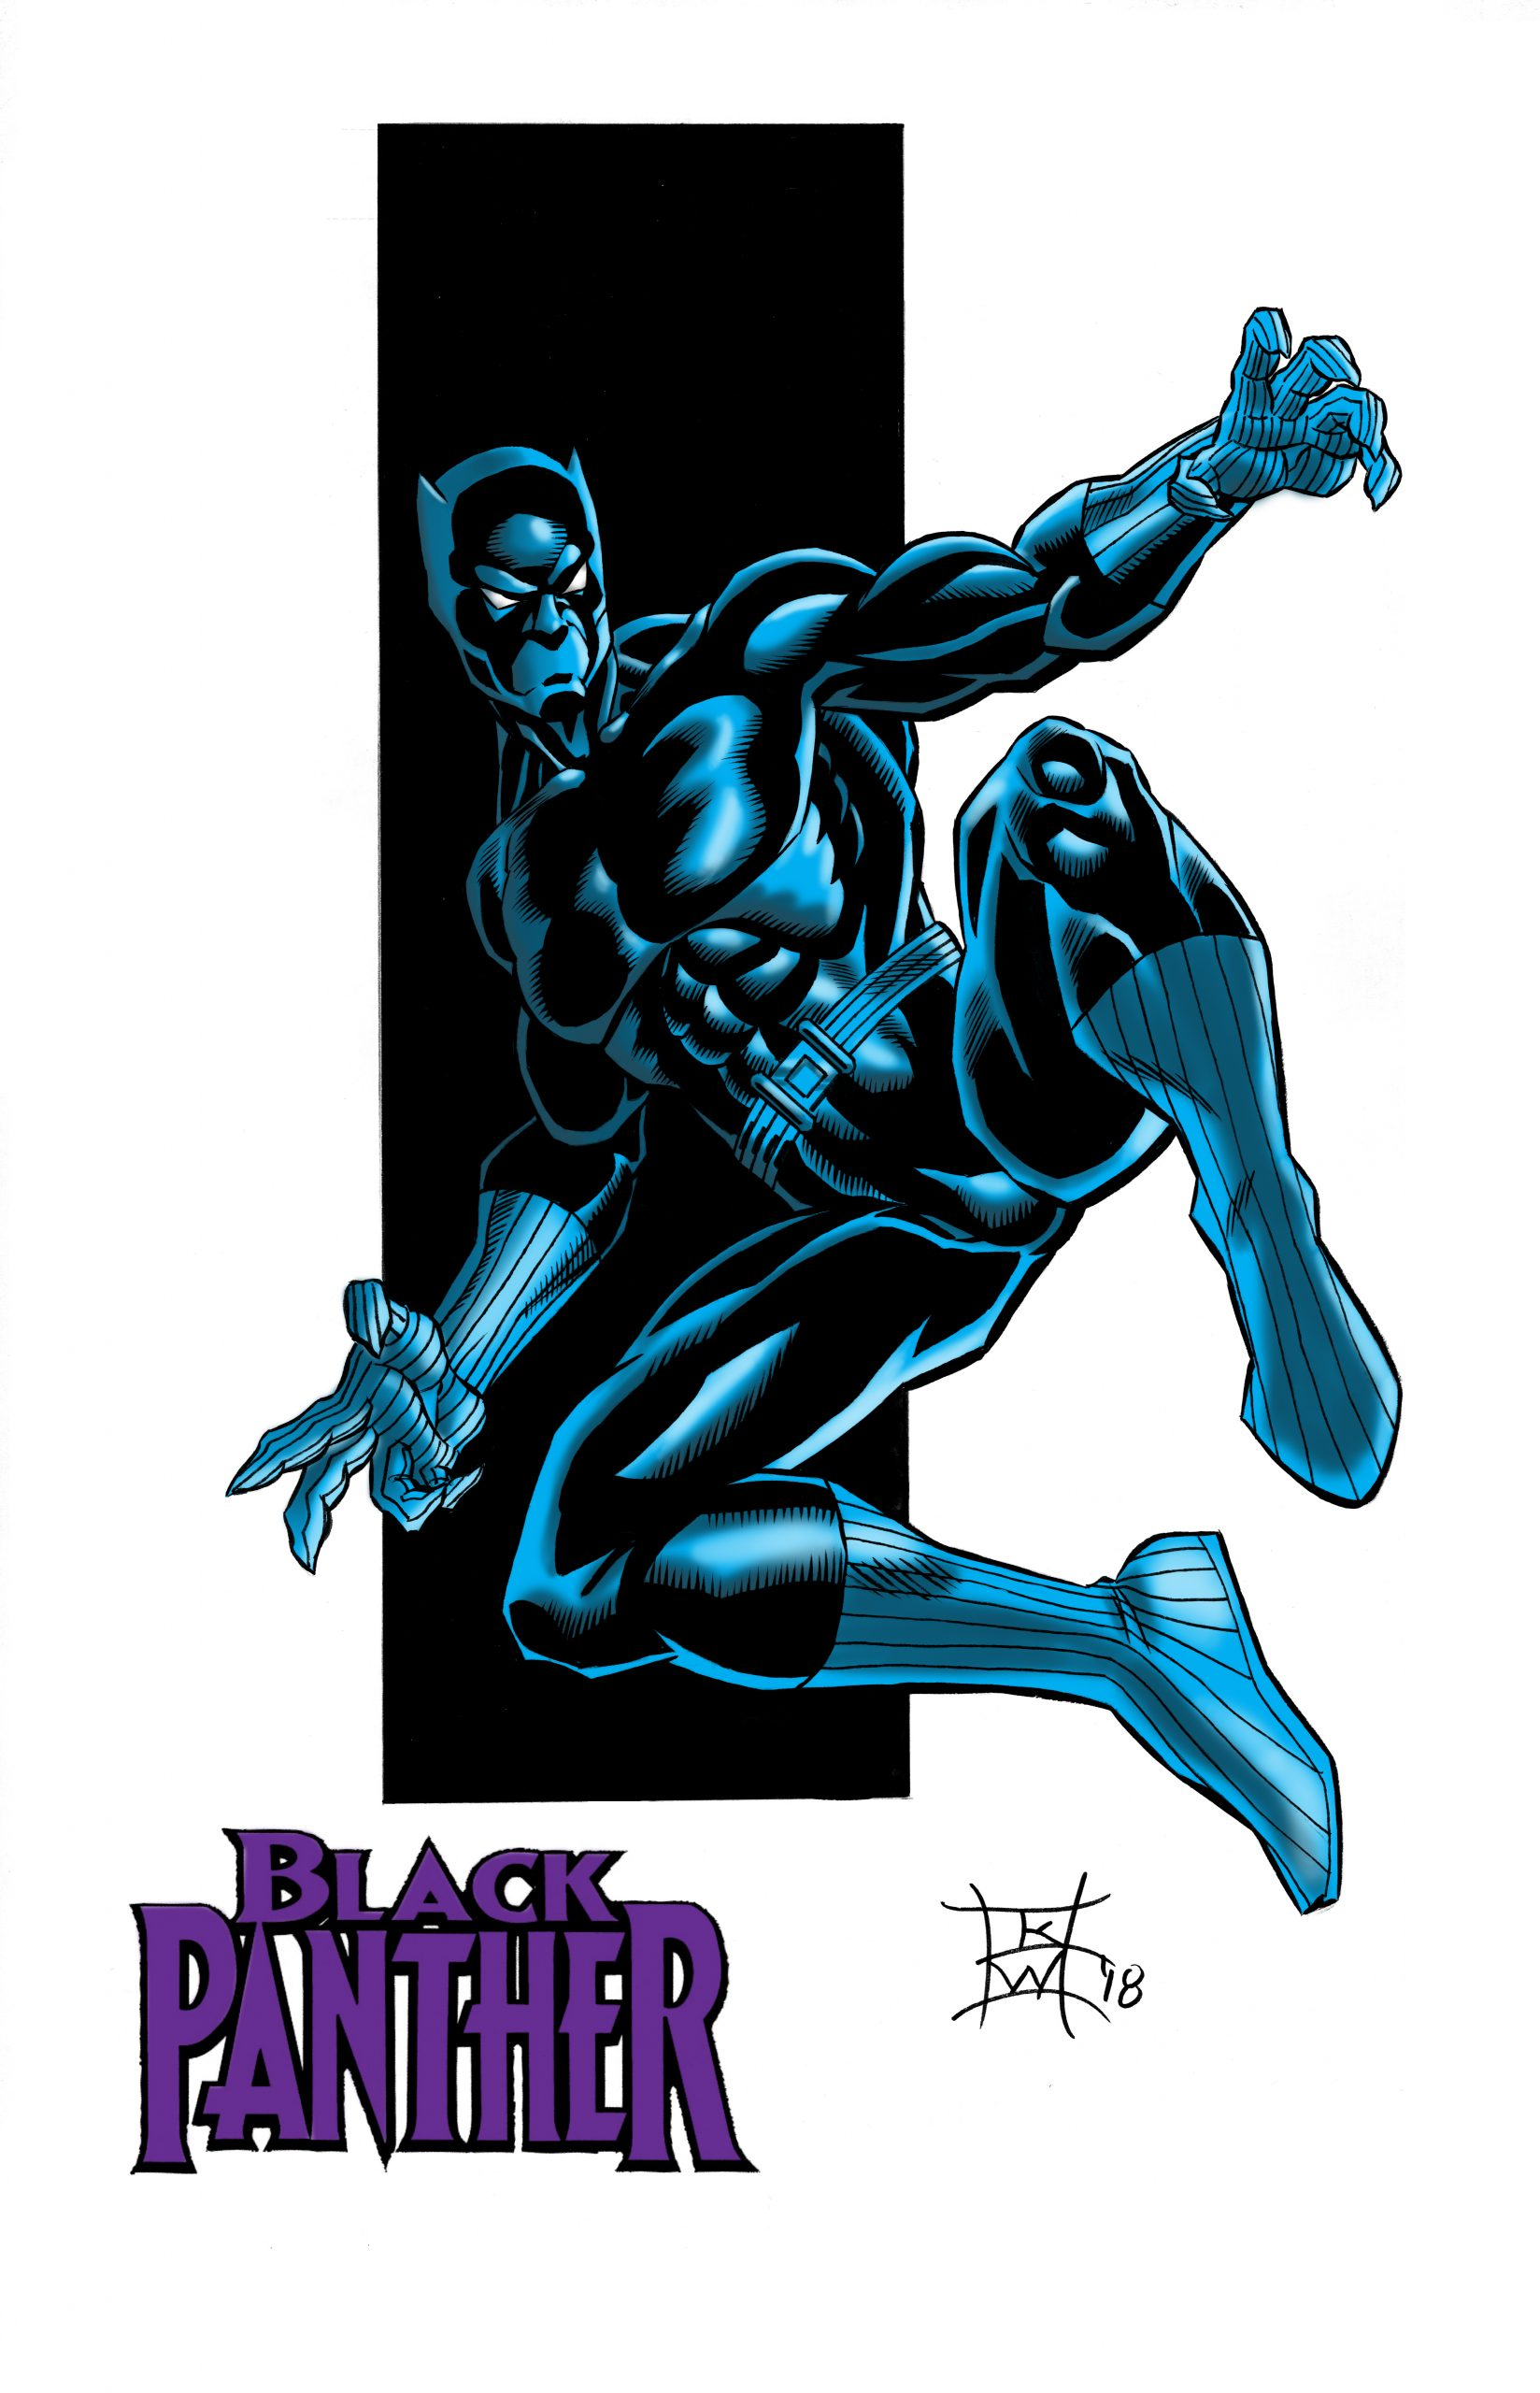 Black Panther by Keith WIlliams